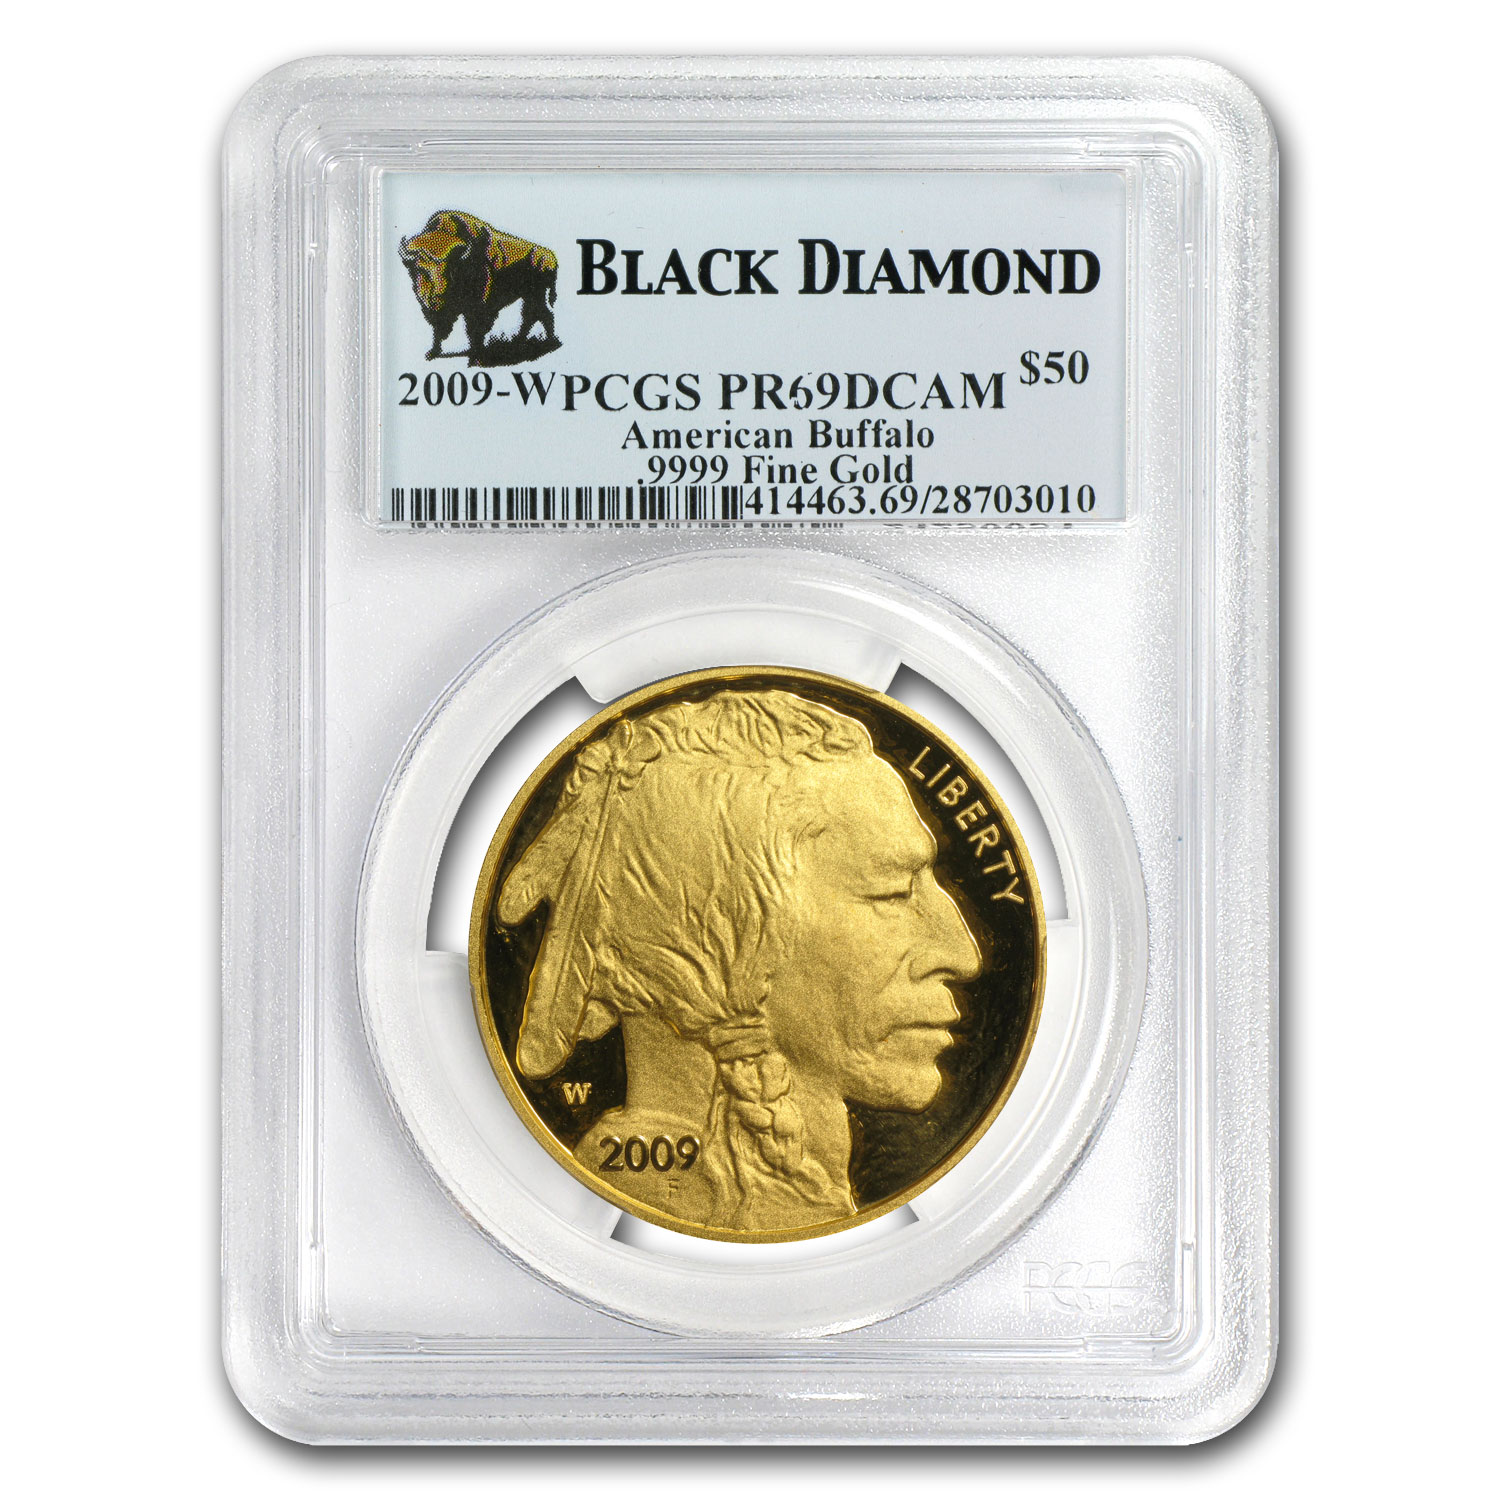 2006-2013 8-Coin 1 oz Gold Buffalo Set PR-69 PCGS (Black Diamond)